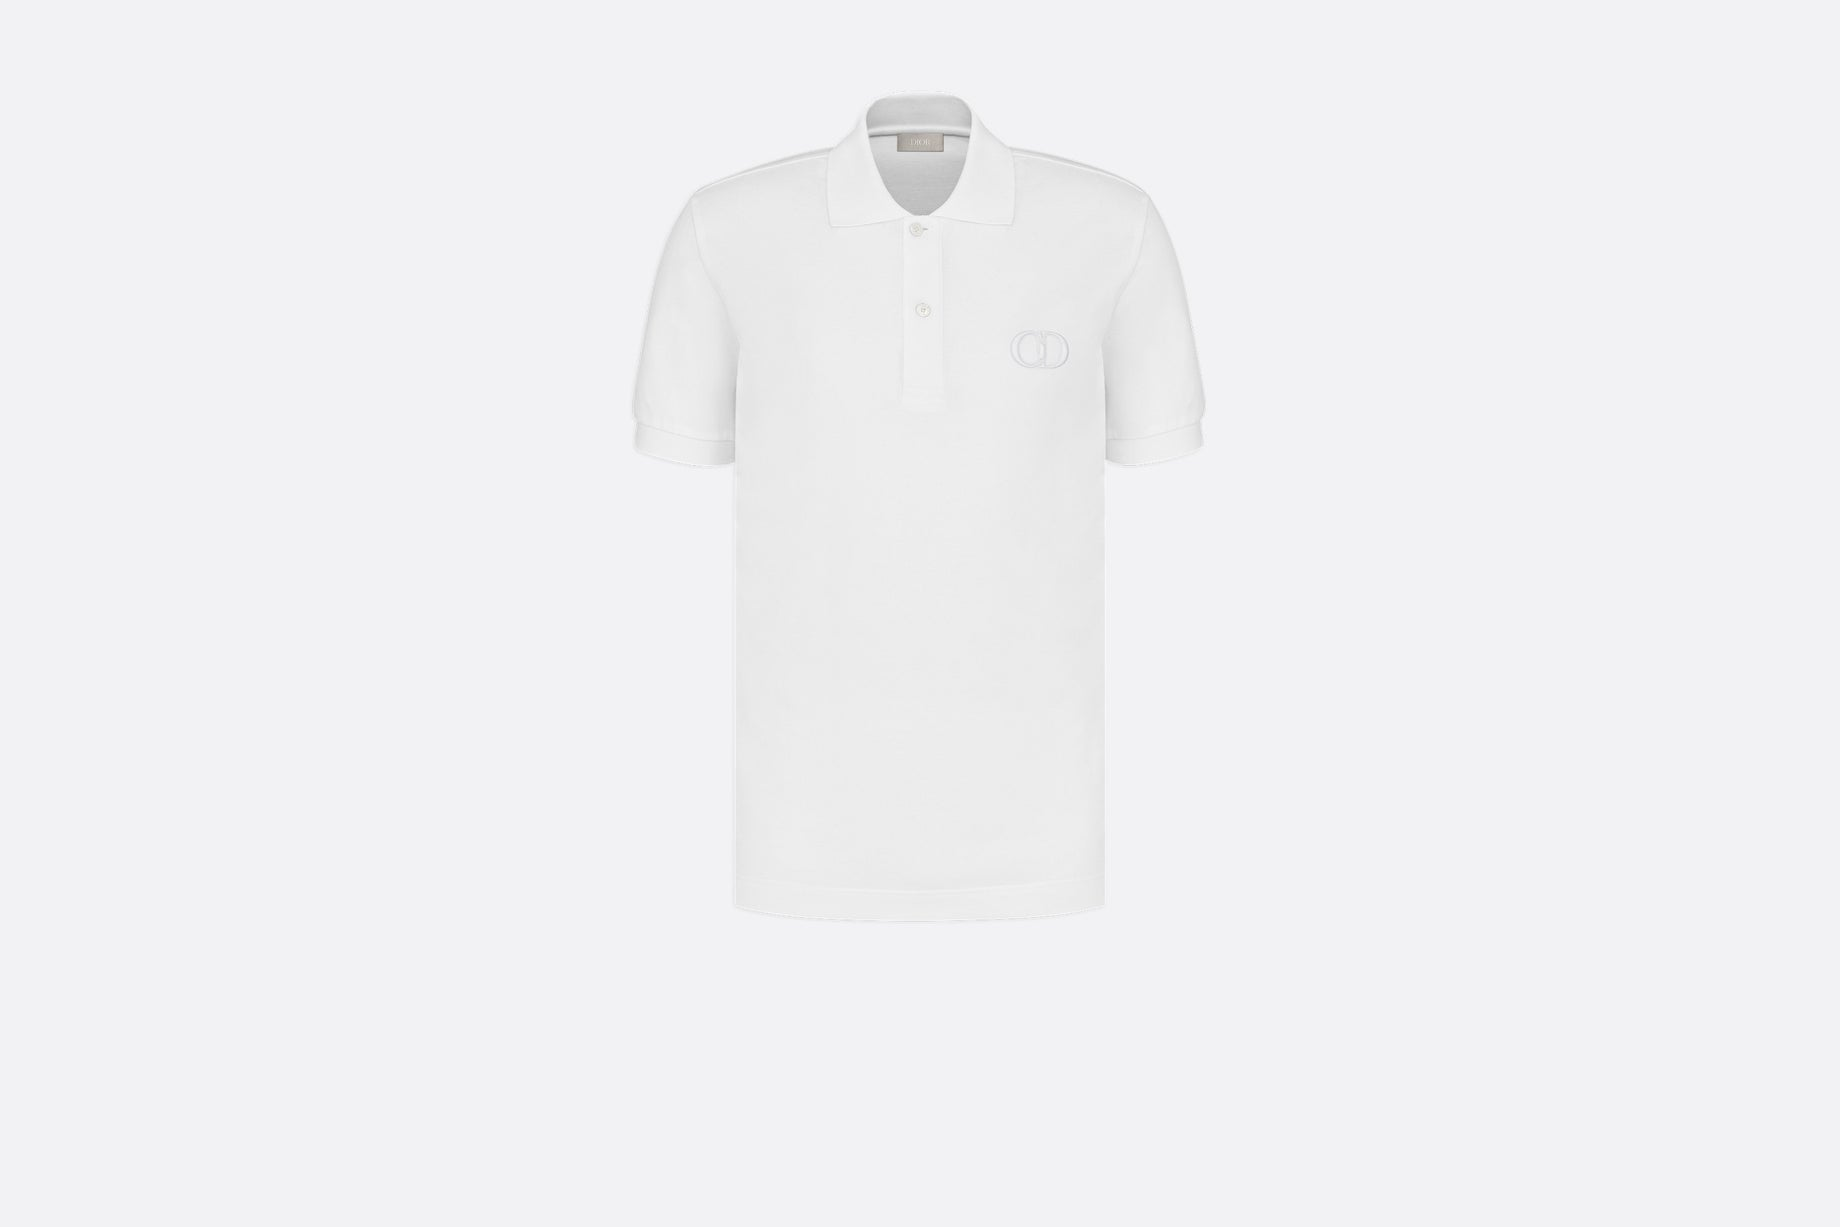 Polo Shirt with 'CD Icon' Signature • White Cotton Piqué